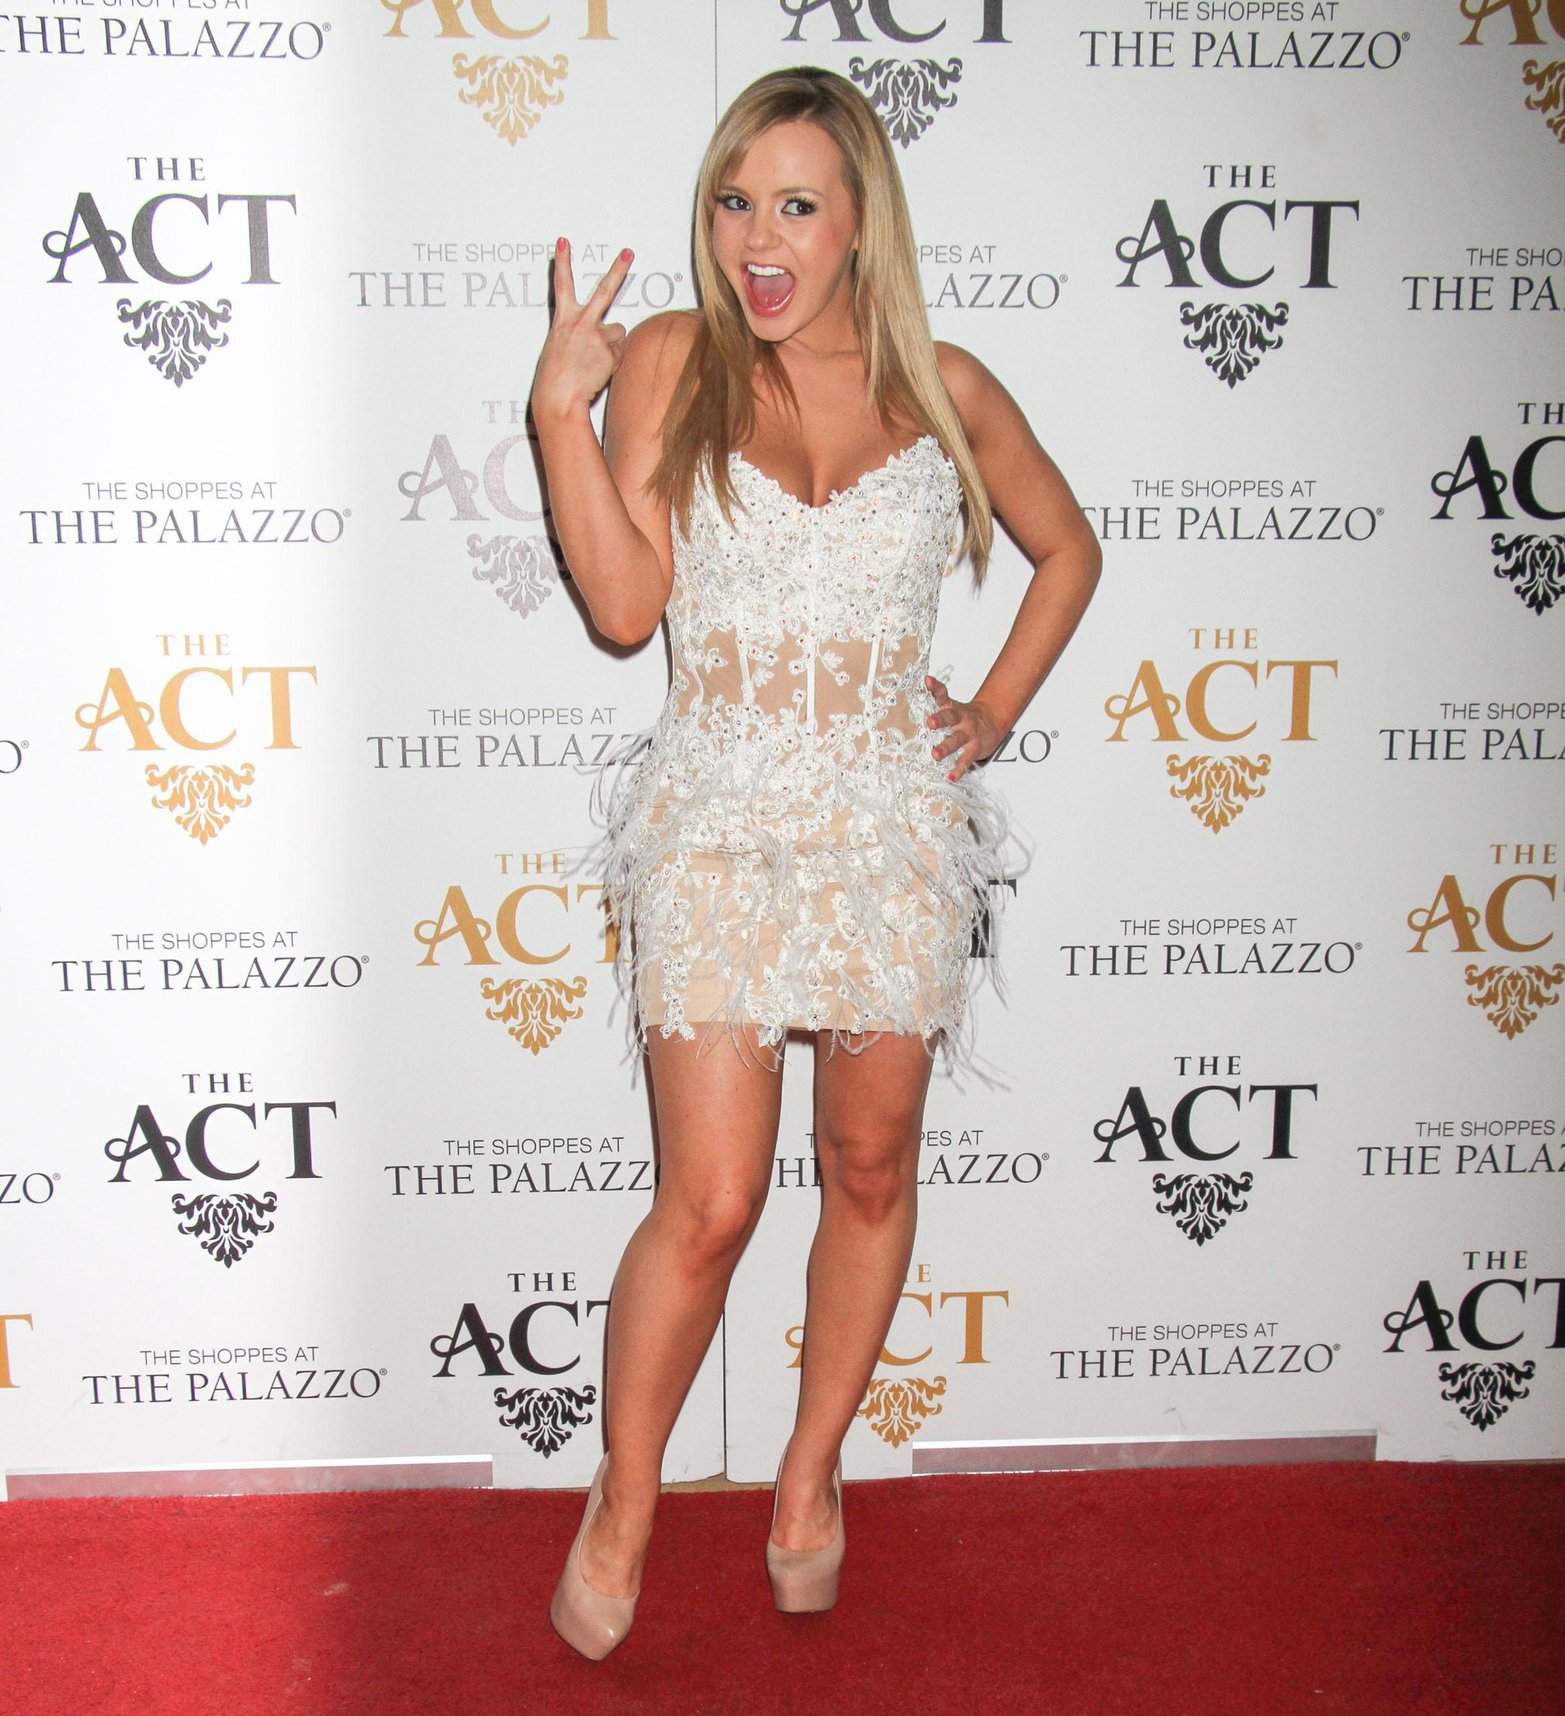 Bree Olson hosts AVN Friday at The Act night club in Las Vegas - Jan. 18, 2013